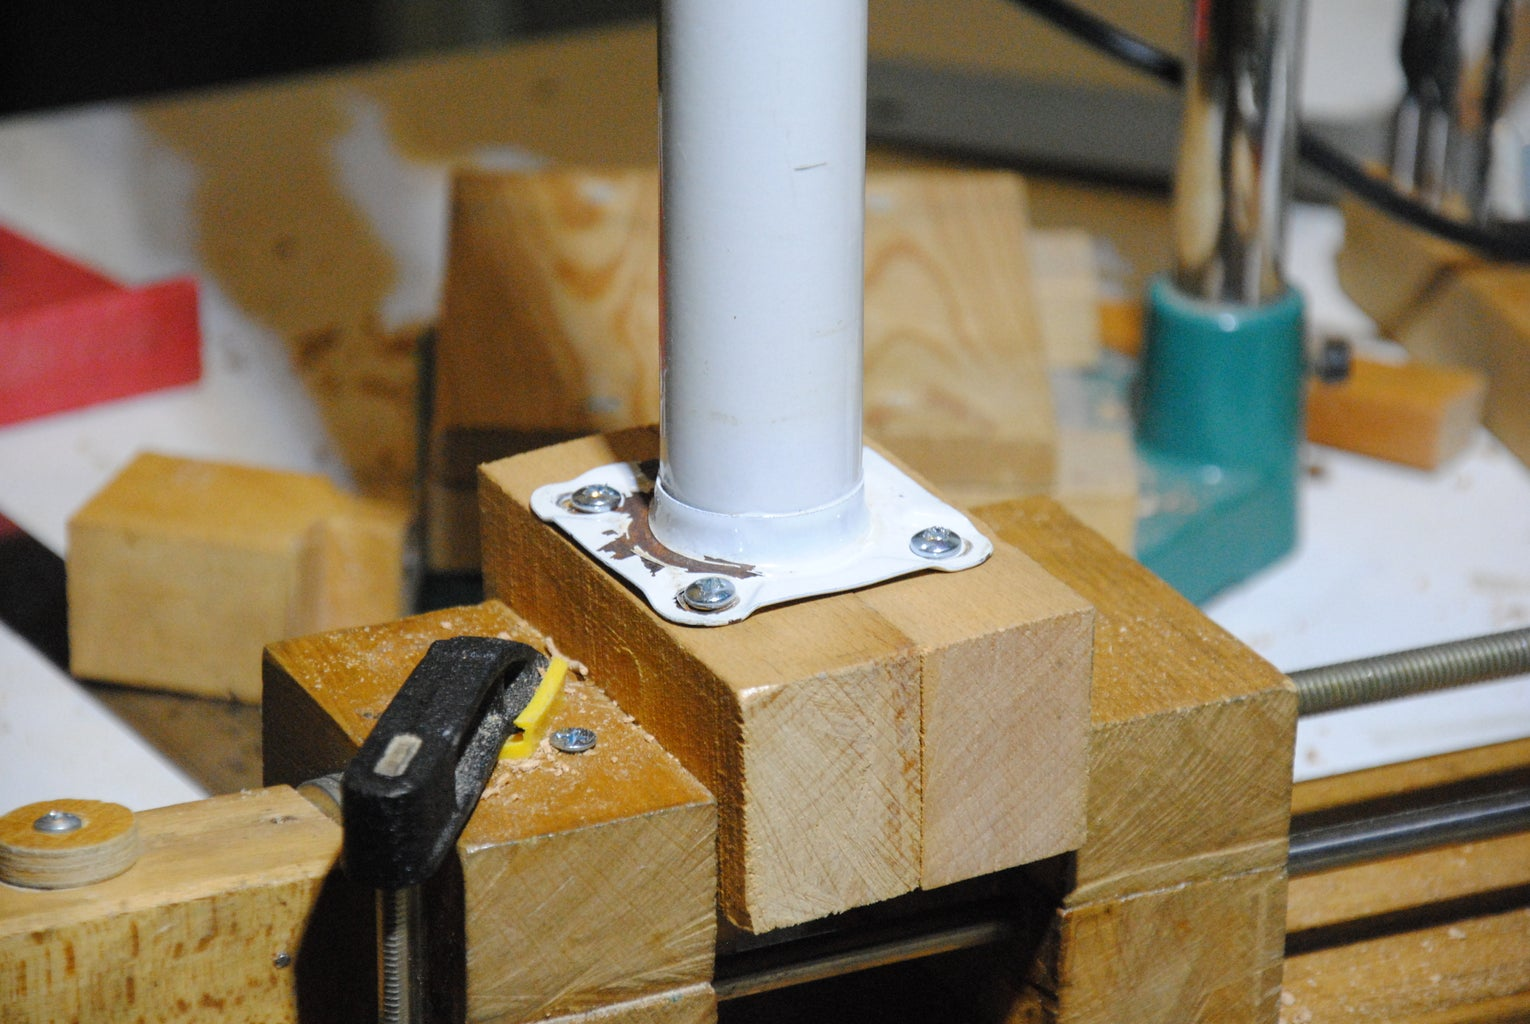 Making the Telescoping Stand Easier to Mount